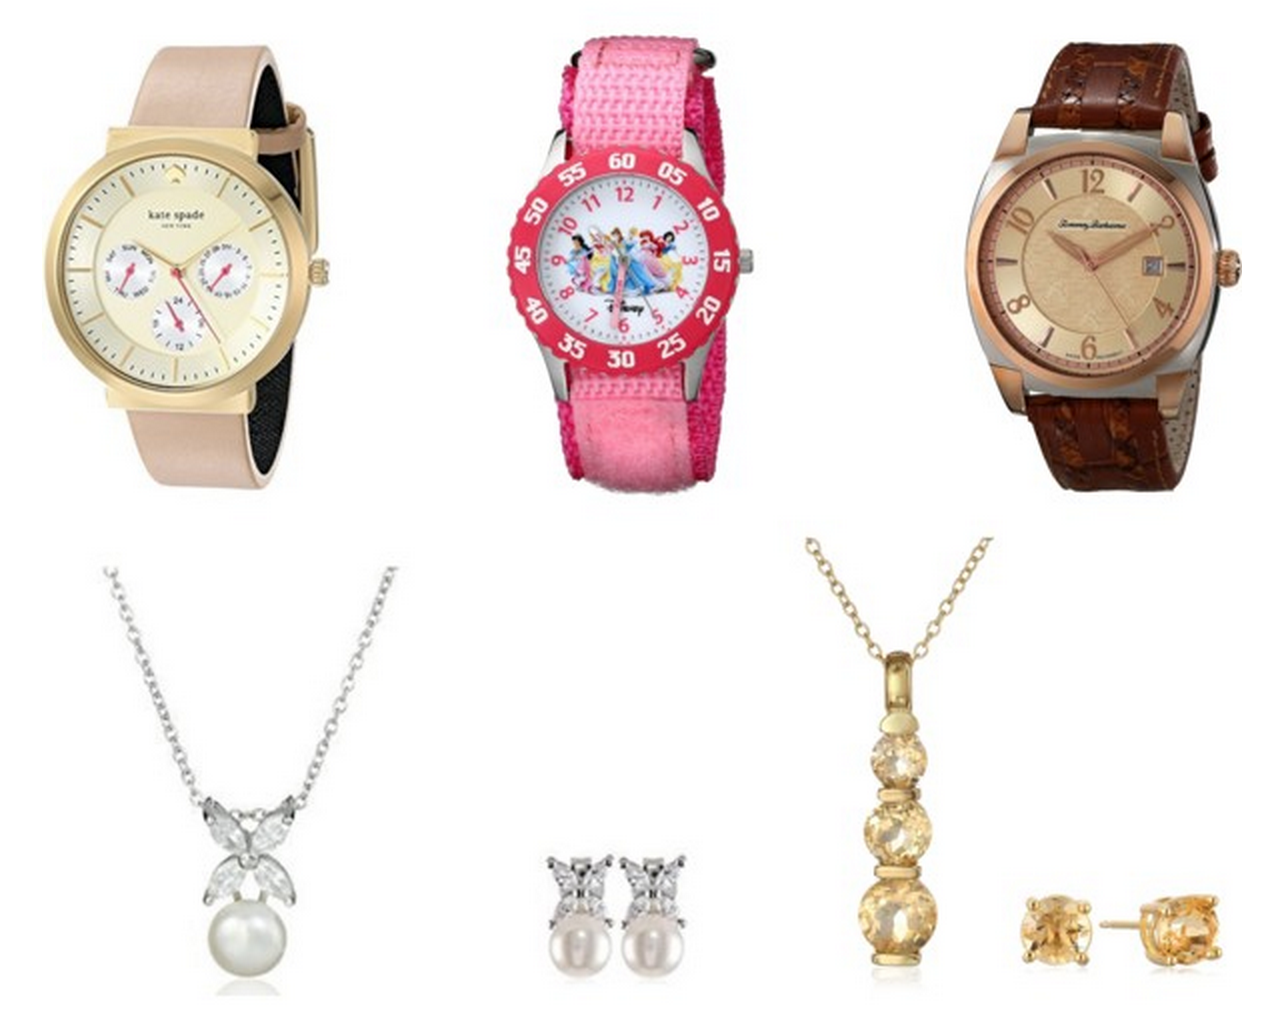 HOT! Extra 25% Off Already Reduced Jewelry and Watches (Timex, Betsey Johnson, and More!)